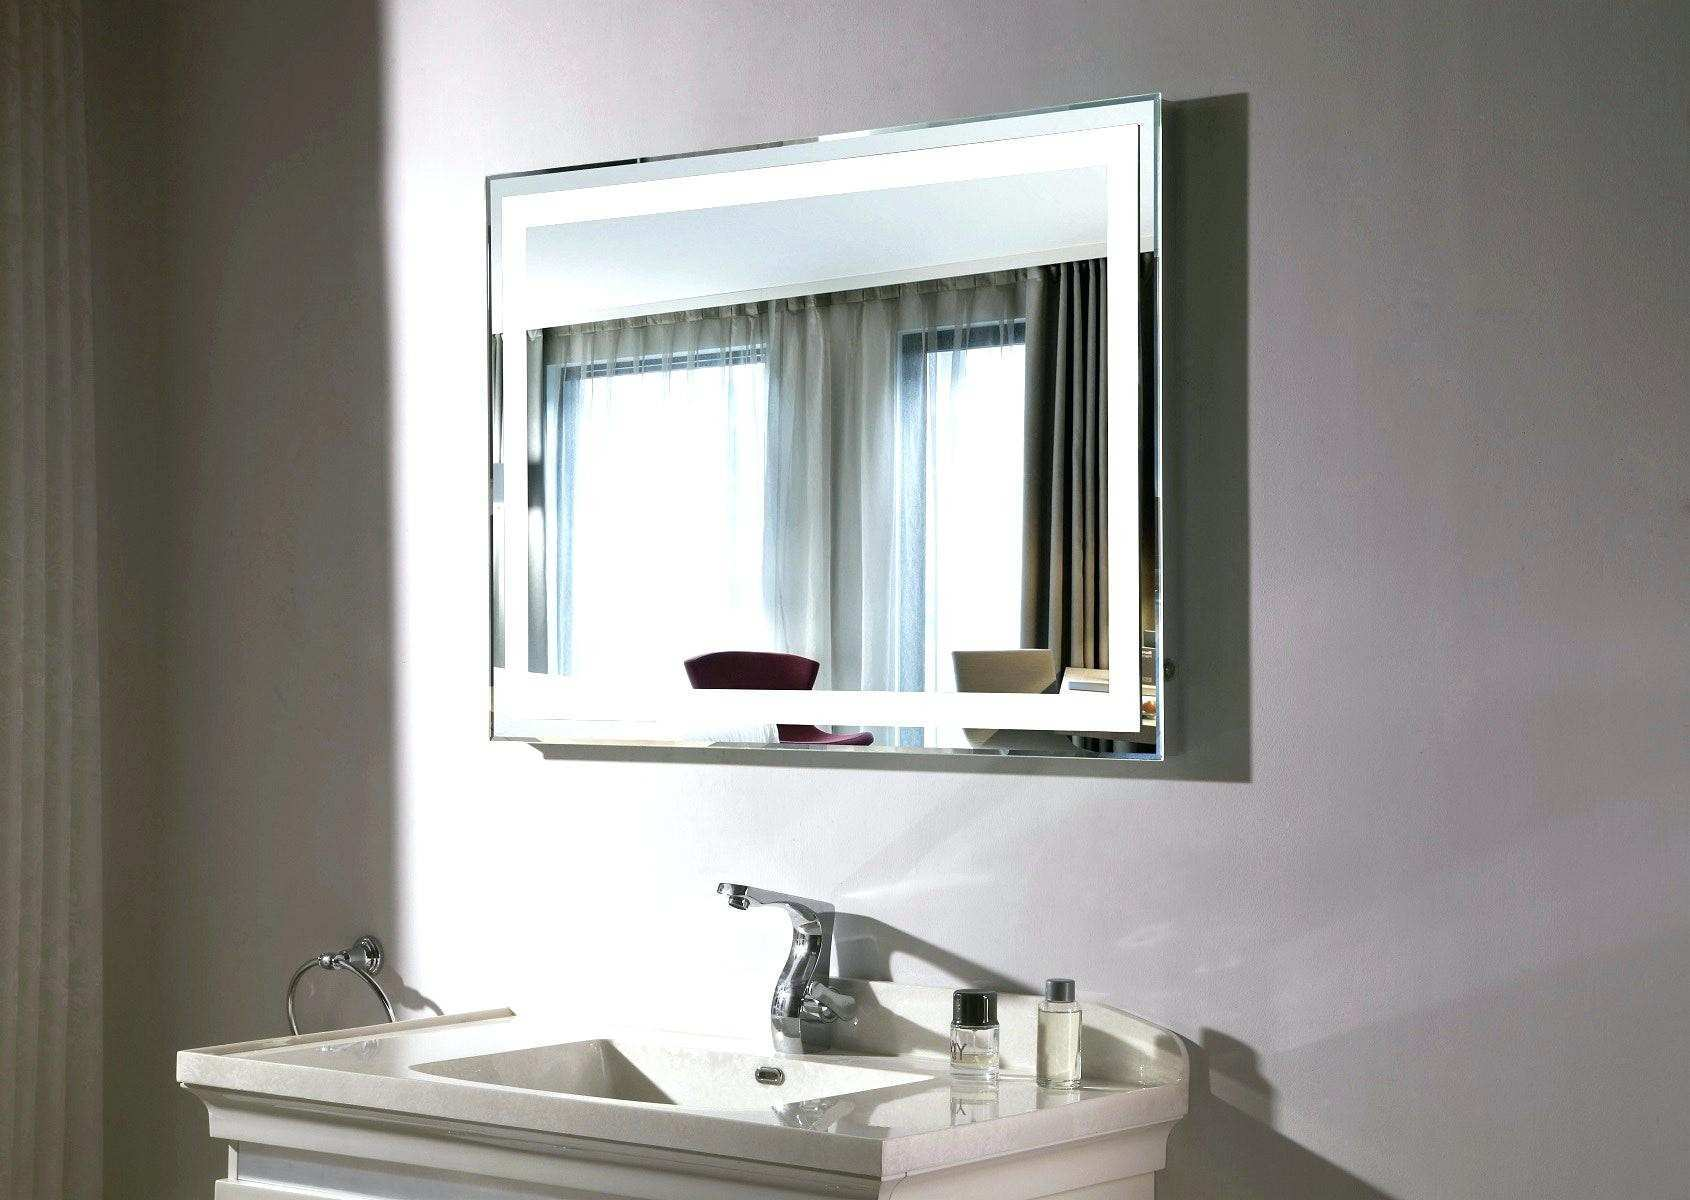 Mirrored Bathroom Cabinet Light Vanity Mirror Wall Mount